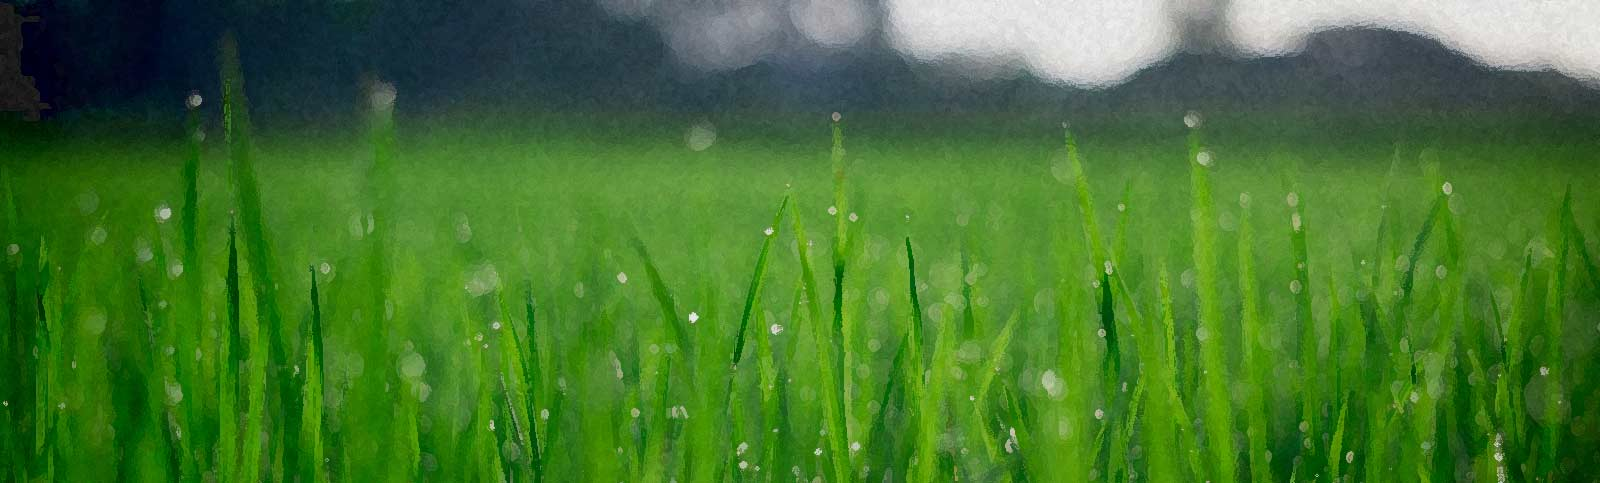 Top Landscape Tip: Hiring Landscapers to Install Your New Lawn and Turf